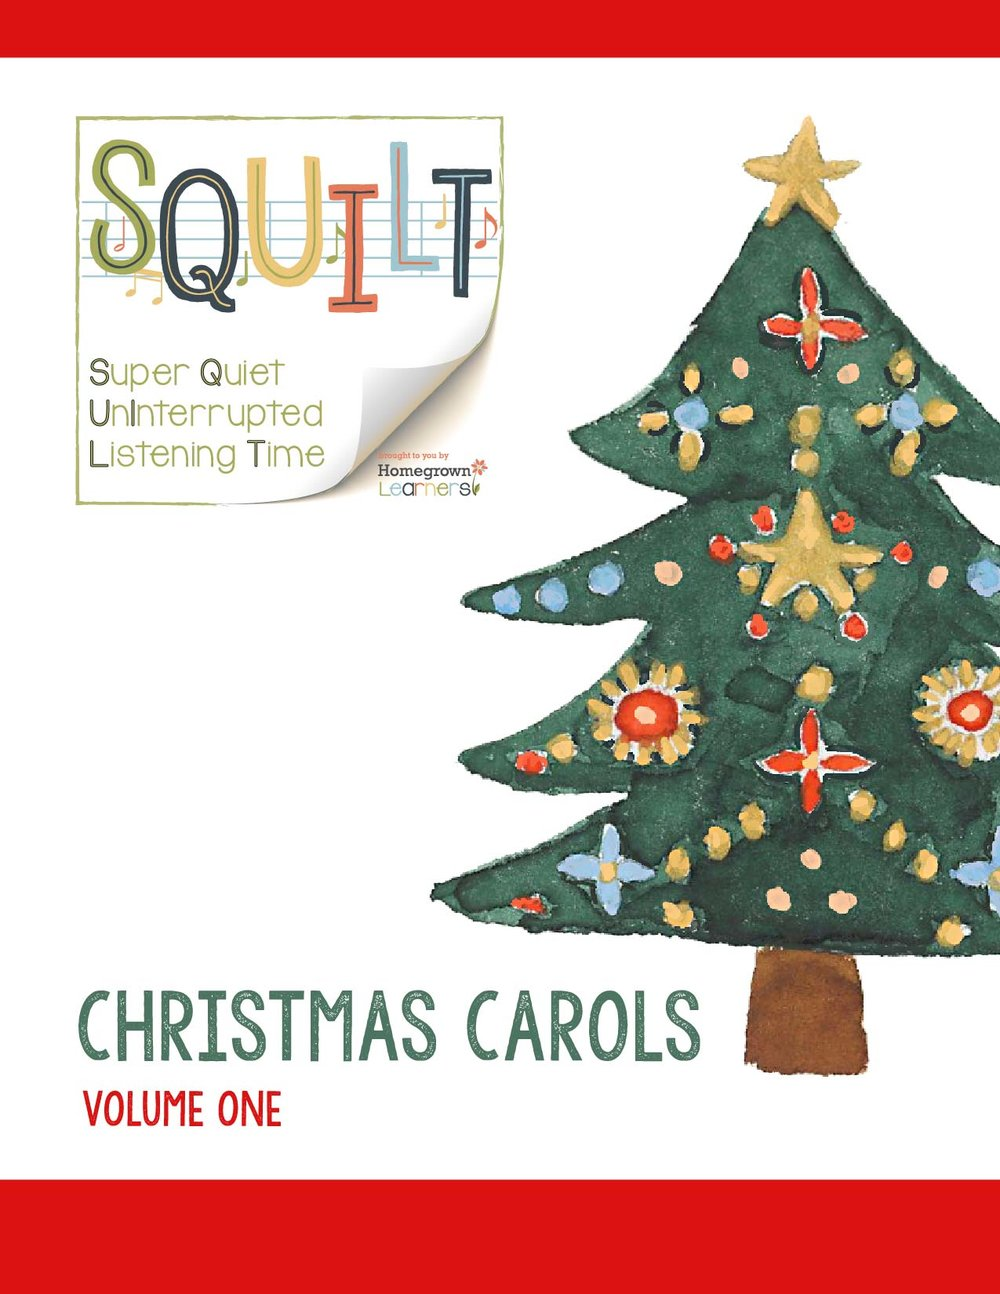 SQUILT_ChristmasCarols-1_cover-01.jpg